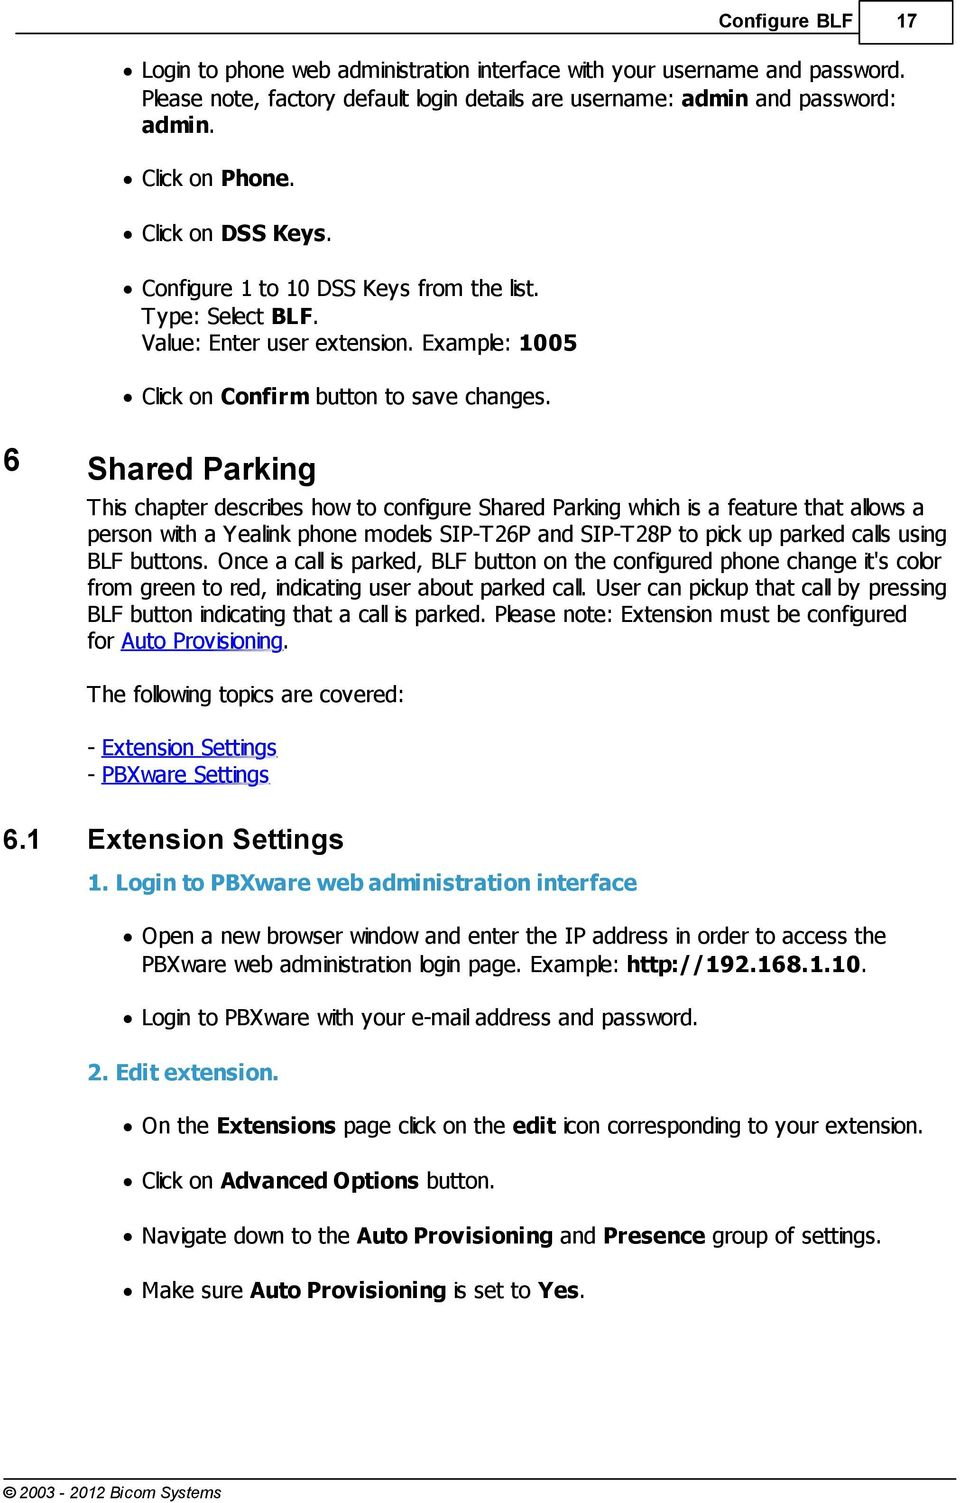 6 Shared Parking This chapter describes how to configure Shared Parking which is a feature that allows a person with a Yealink phone models SIP-T26P and SIP-T28P to pick up parked calls using BLF